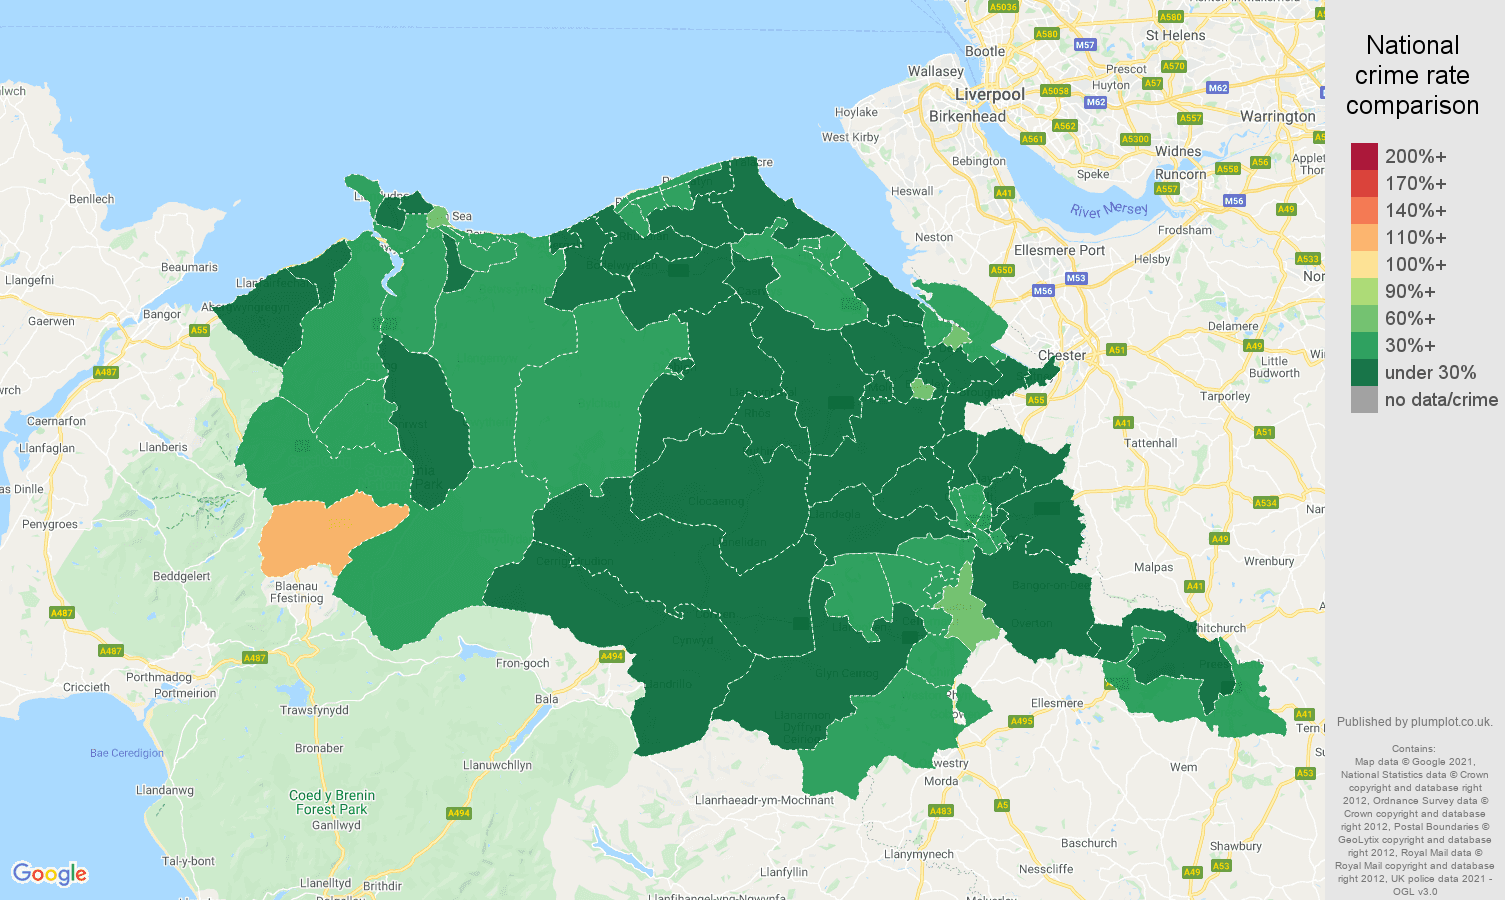 Clwyd vehicle crime rate comparison map